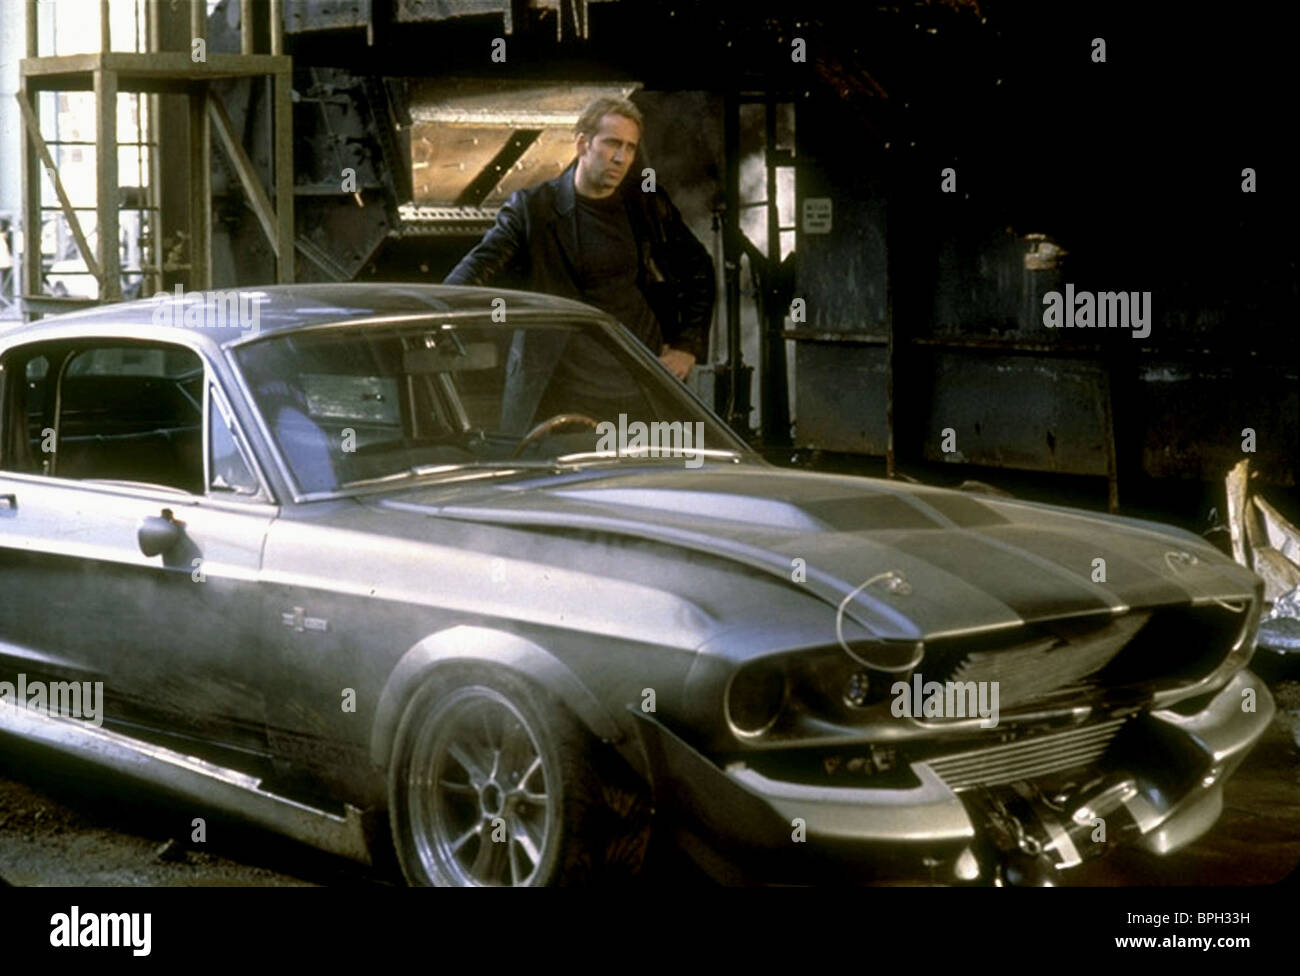 NICOLAS CAGE GONE IN 60 SECONDS (2000) - Stock Image